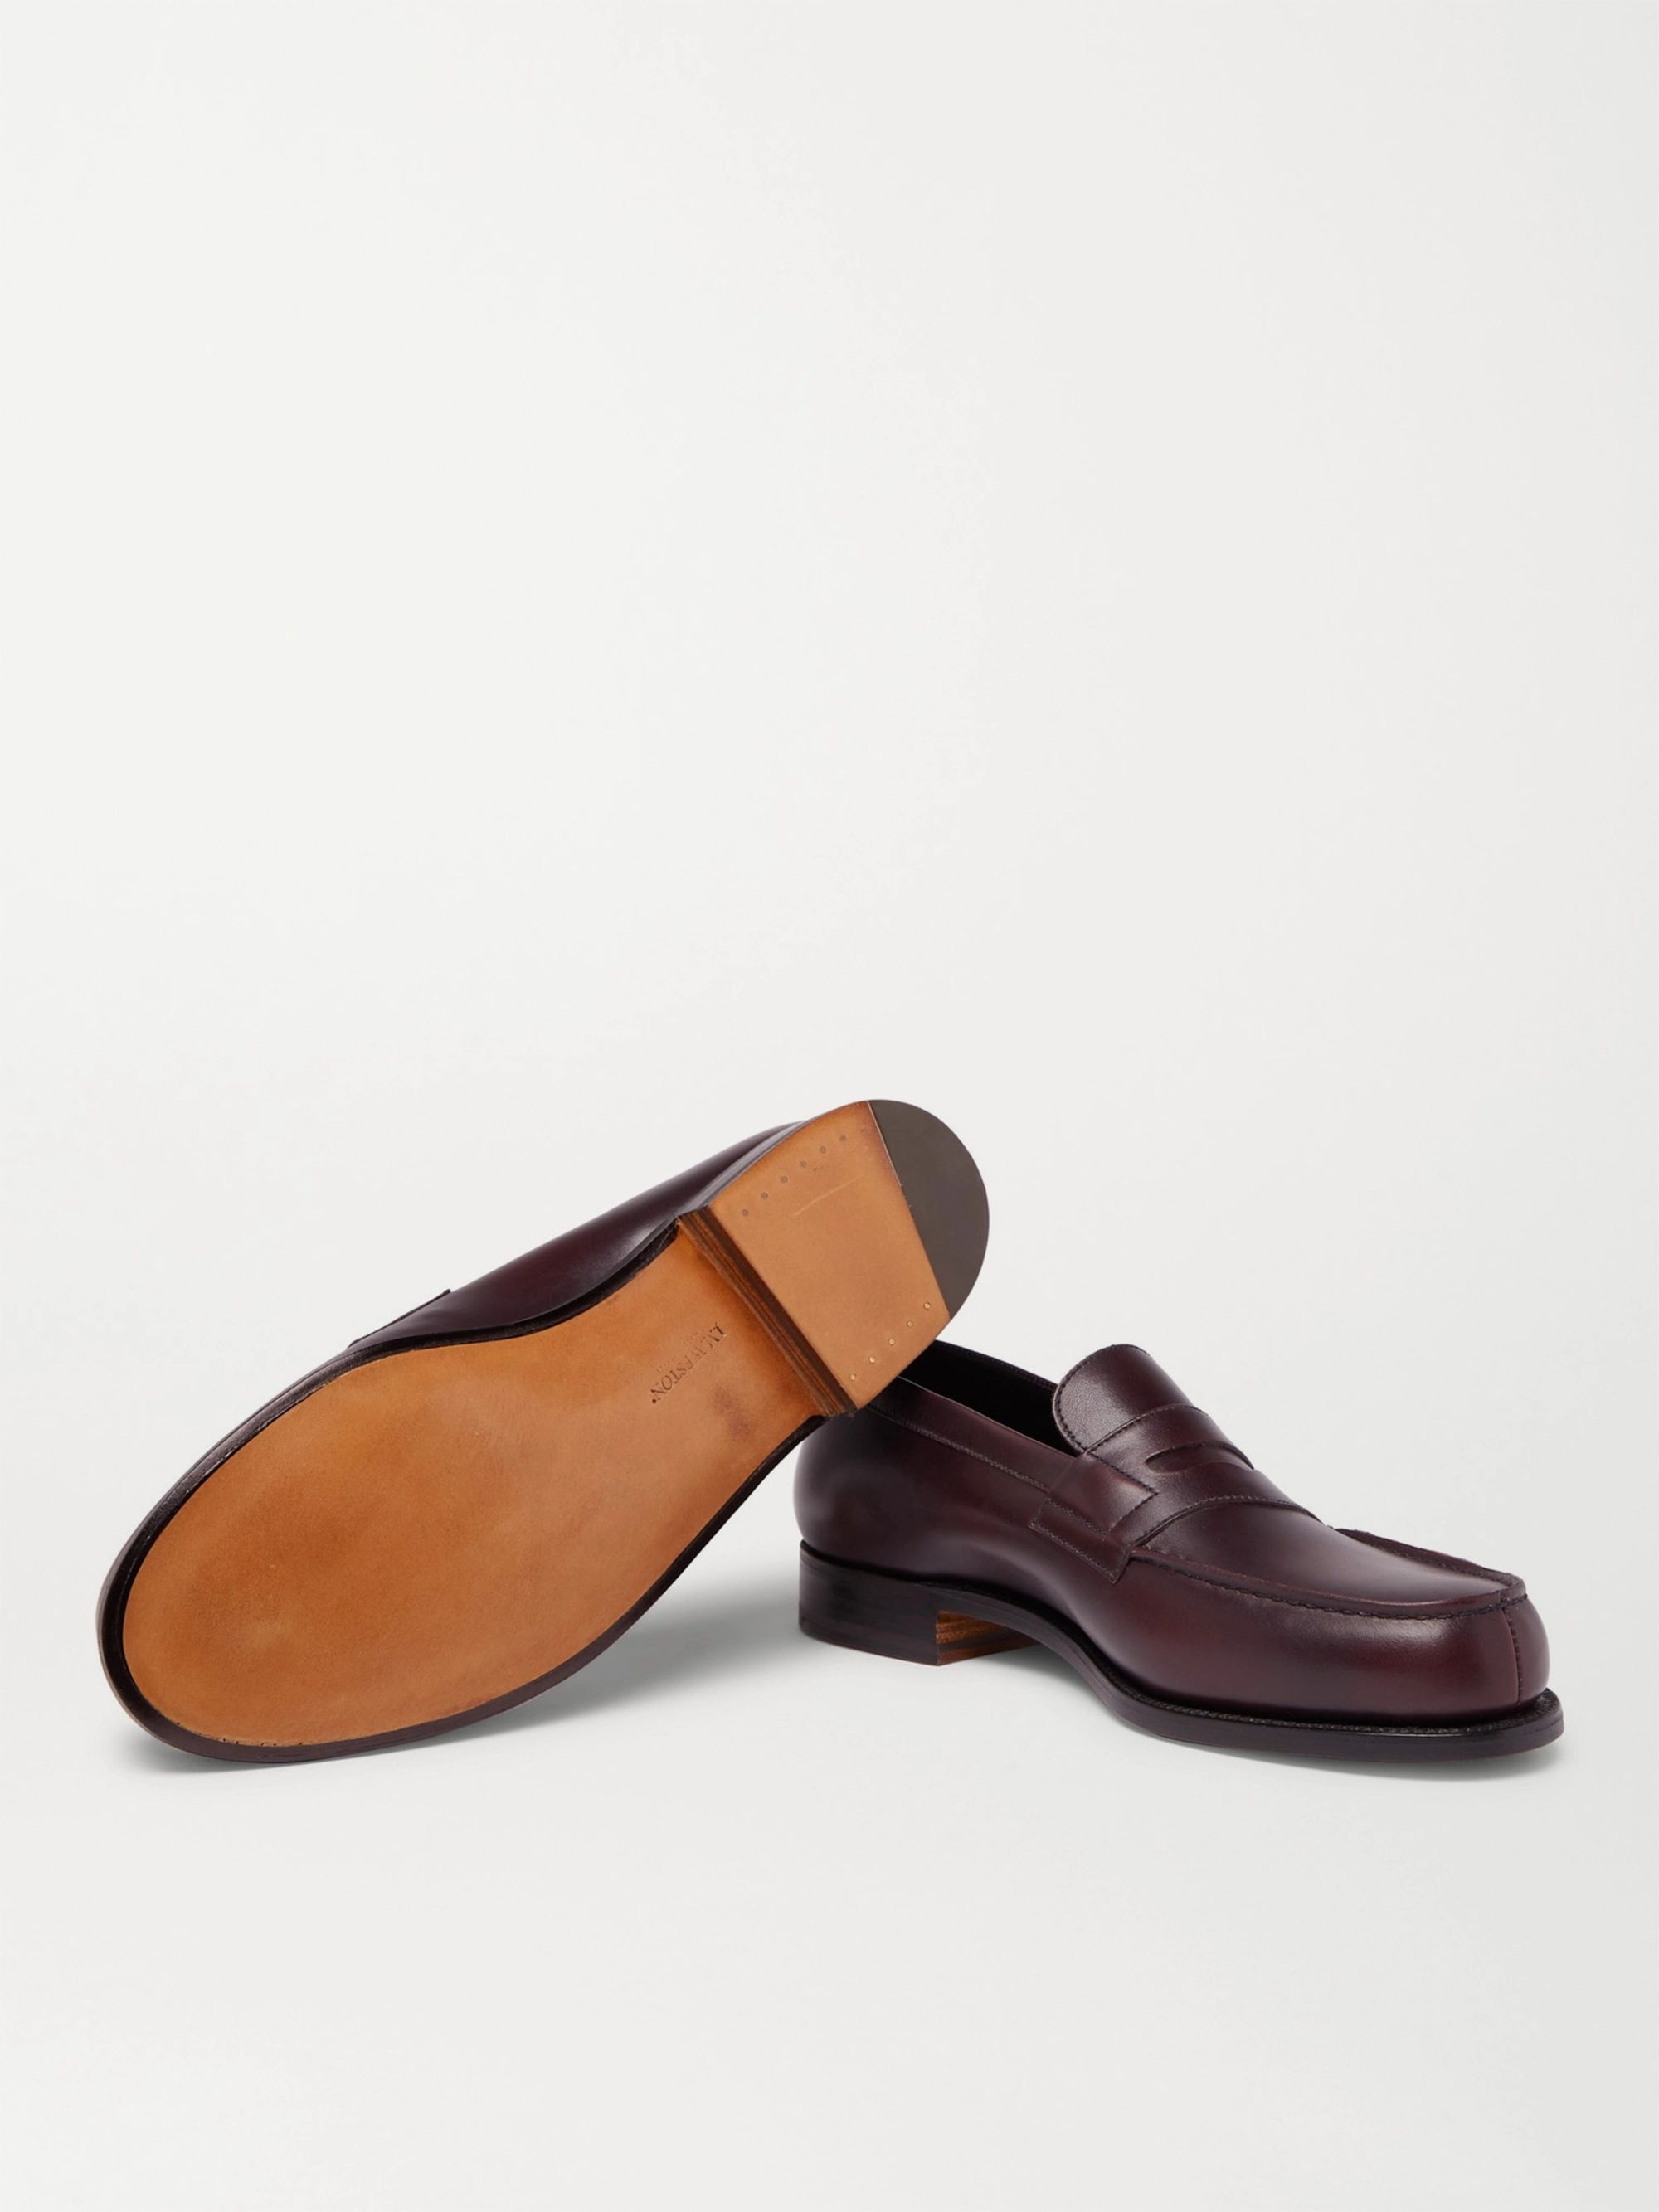 J.M. Weston 180 The Moccasin Burnished-Leather Penny Loafers